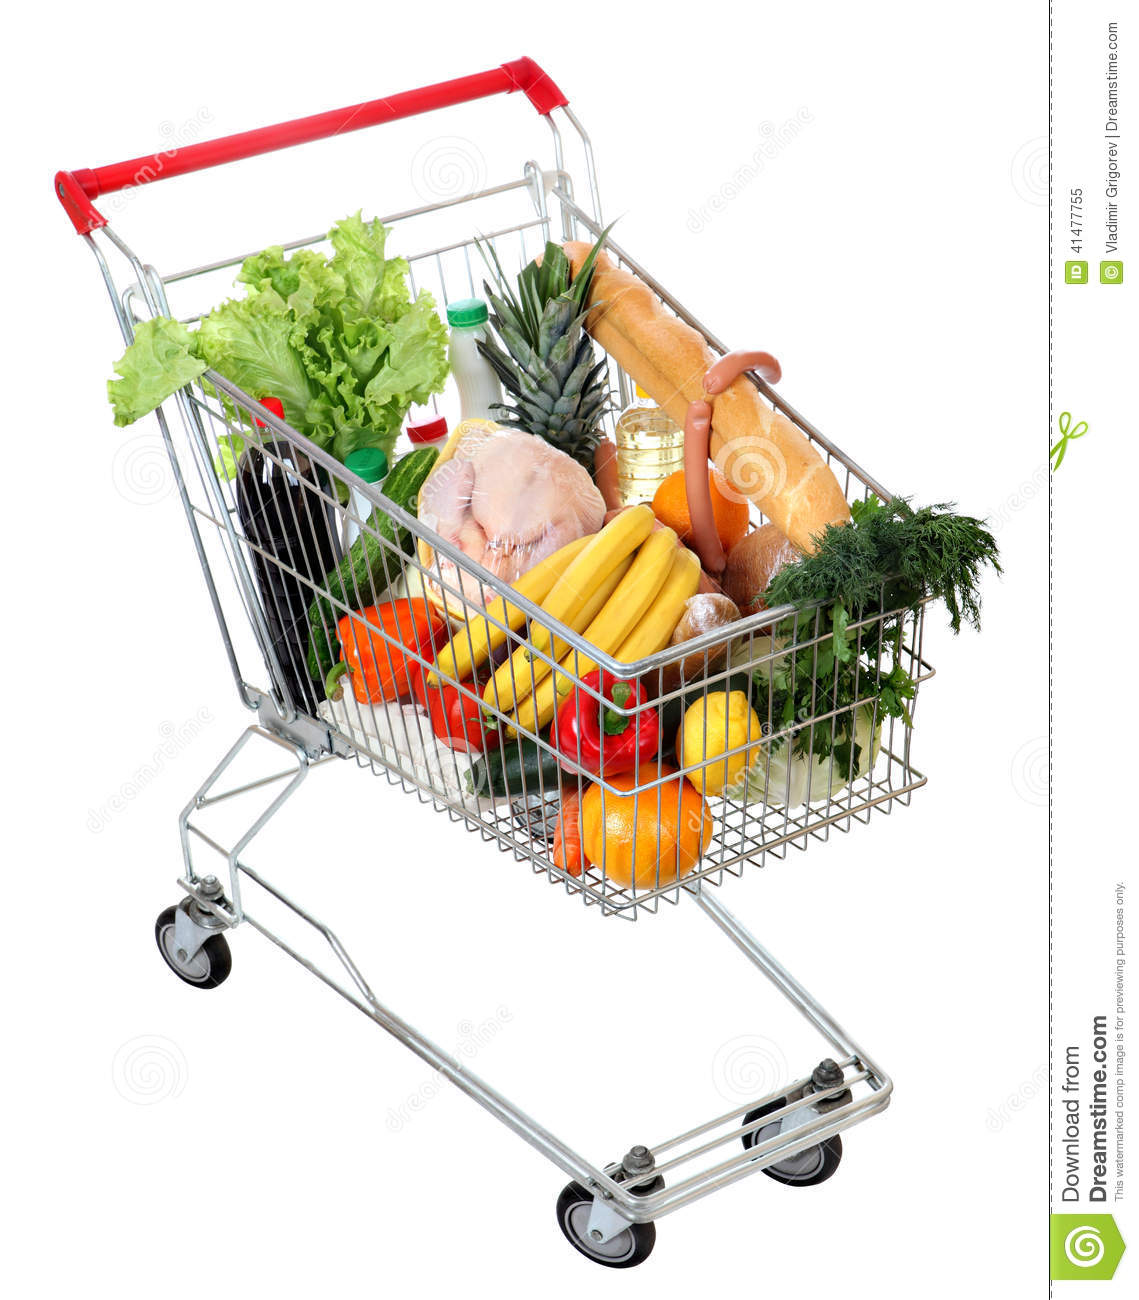 Cart full of food, isolated image on white background